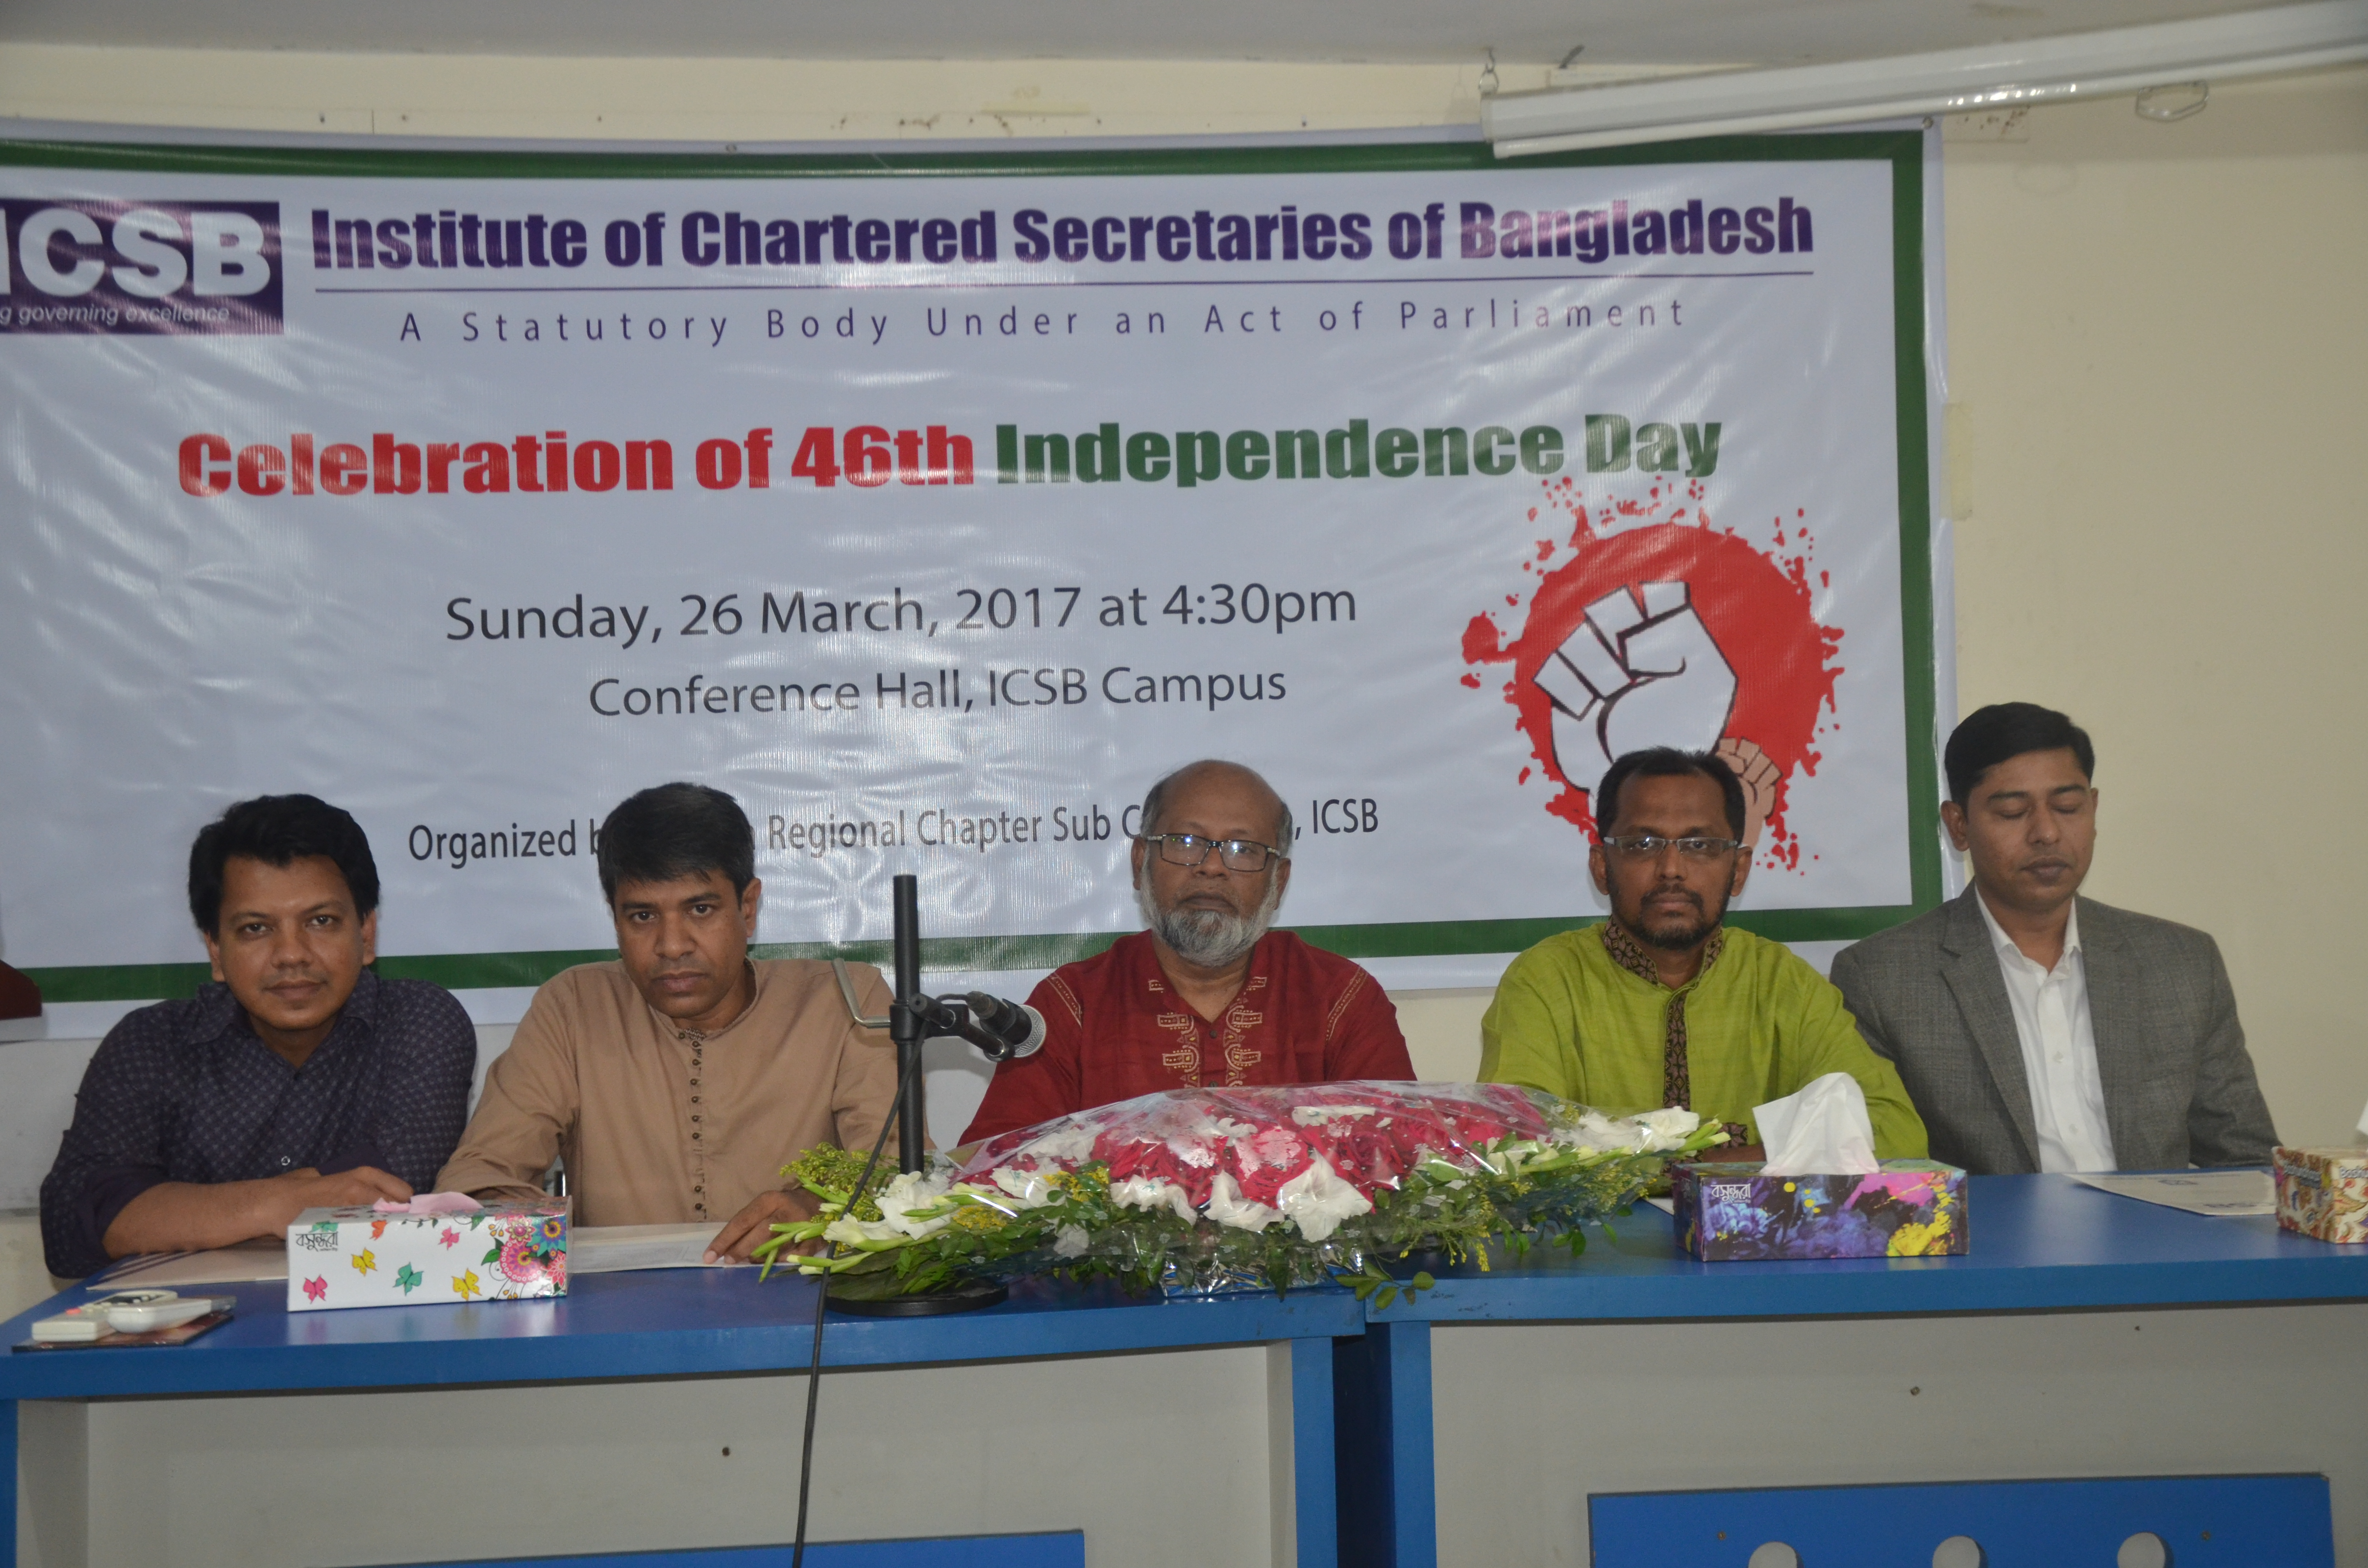 Celebration of 46th Independence Day at ICSB